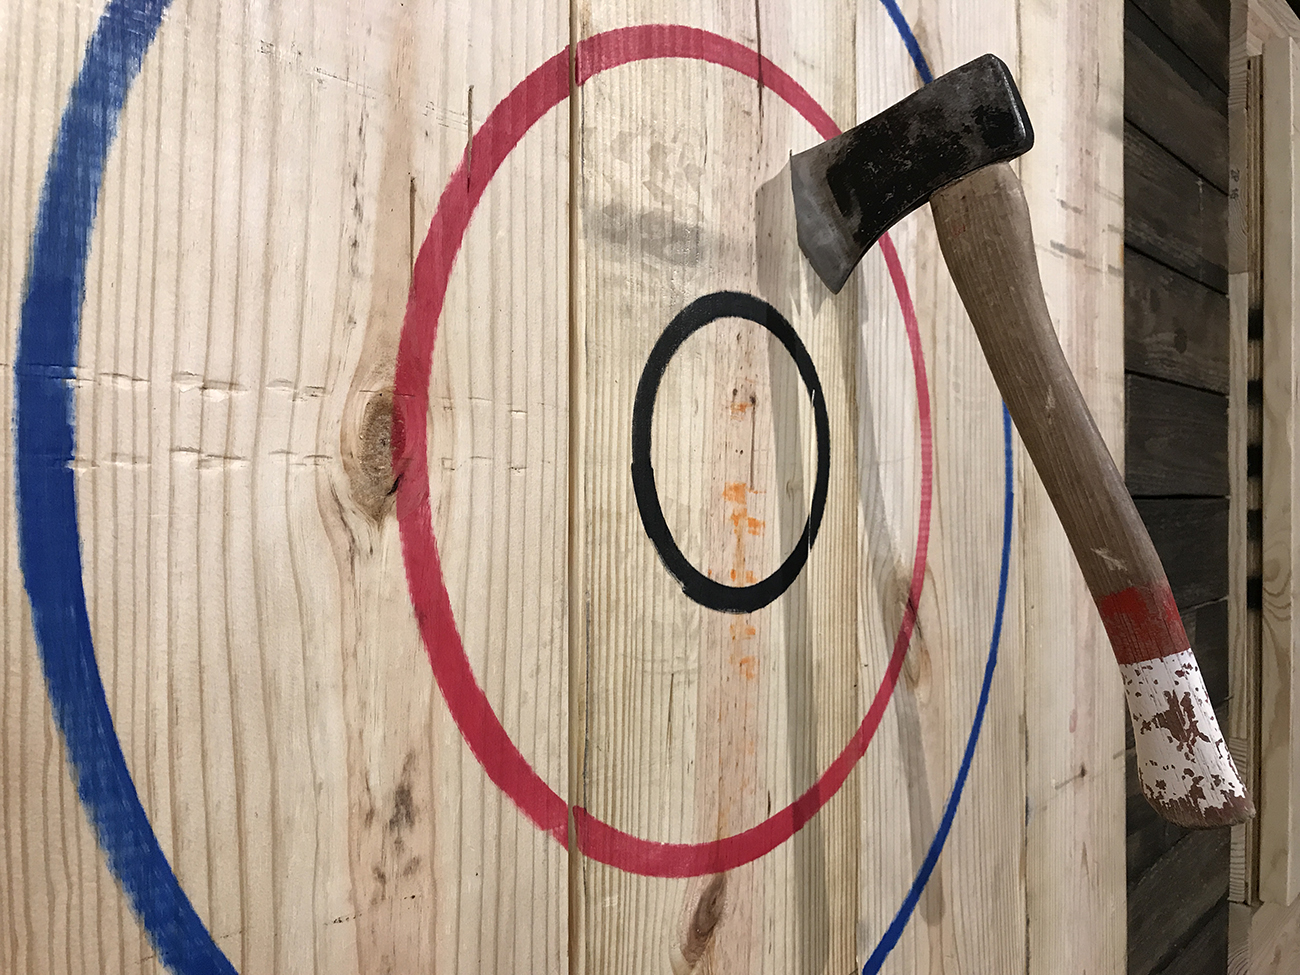 Grab some friends, a beer and an axe: Lumberjaxe opens this Saturday near Plaza Midwood